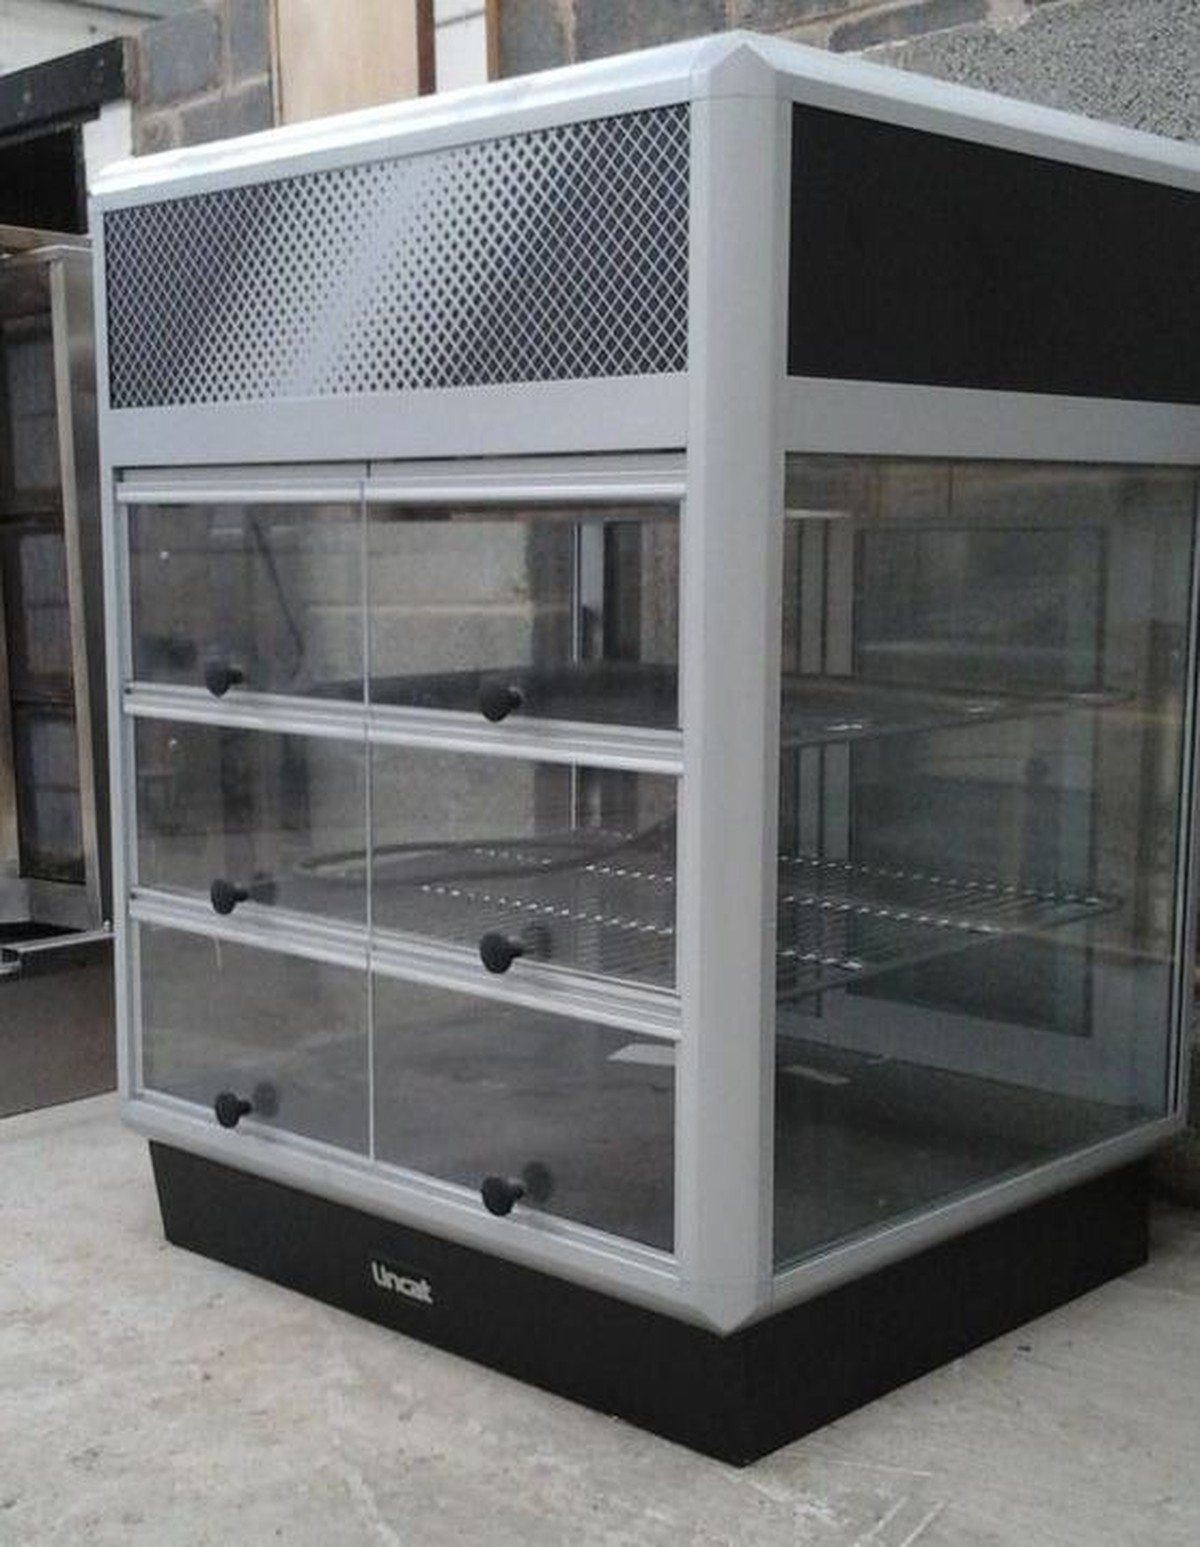 secondhand catering equipment refrigerated display. Black Bedroom Furniture Sets. Home Design Ideas